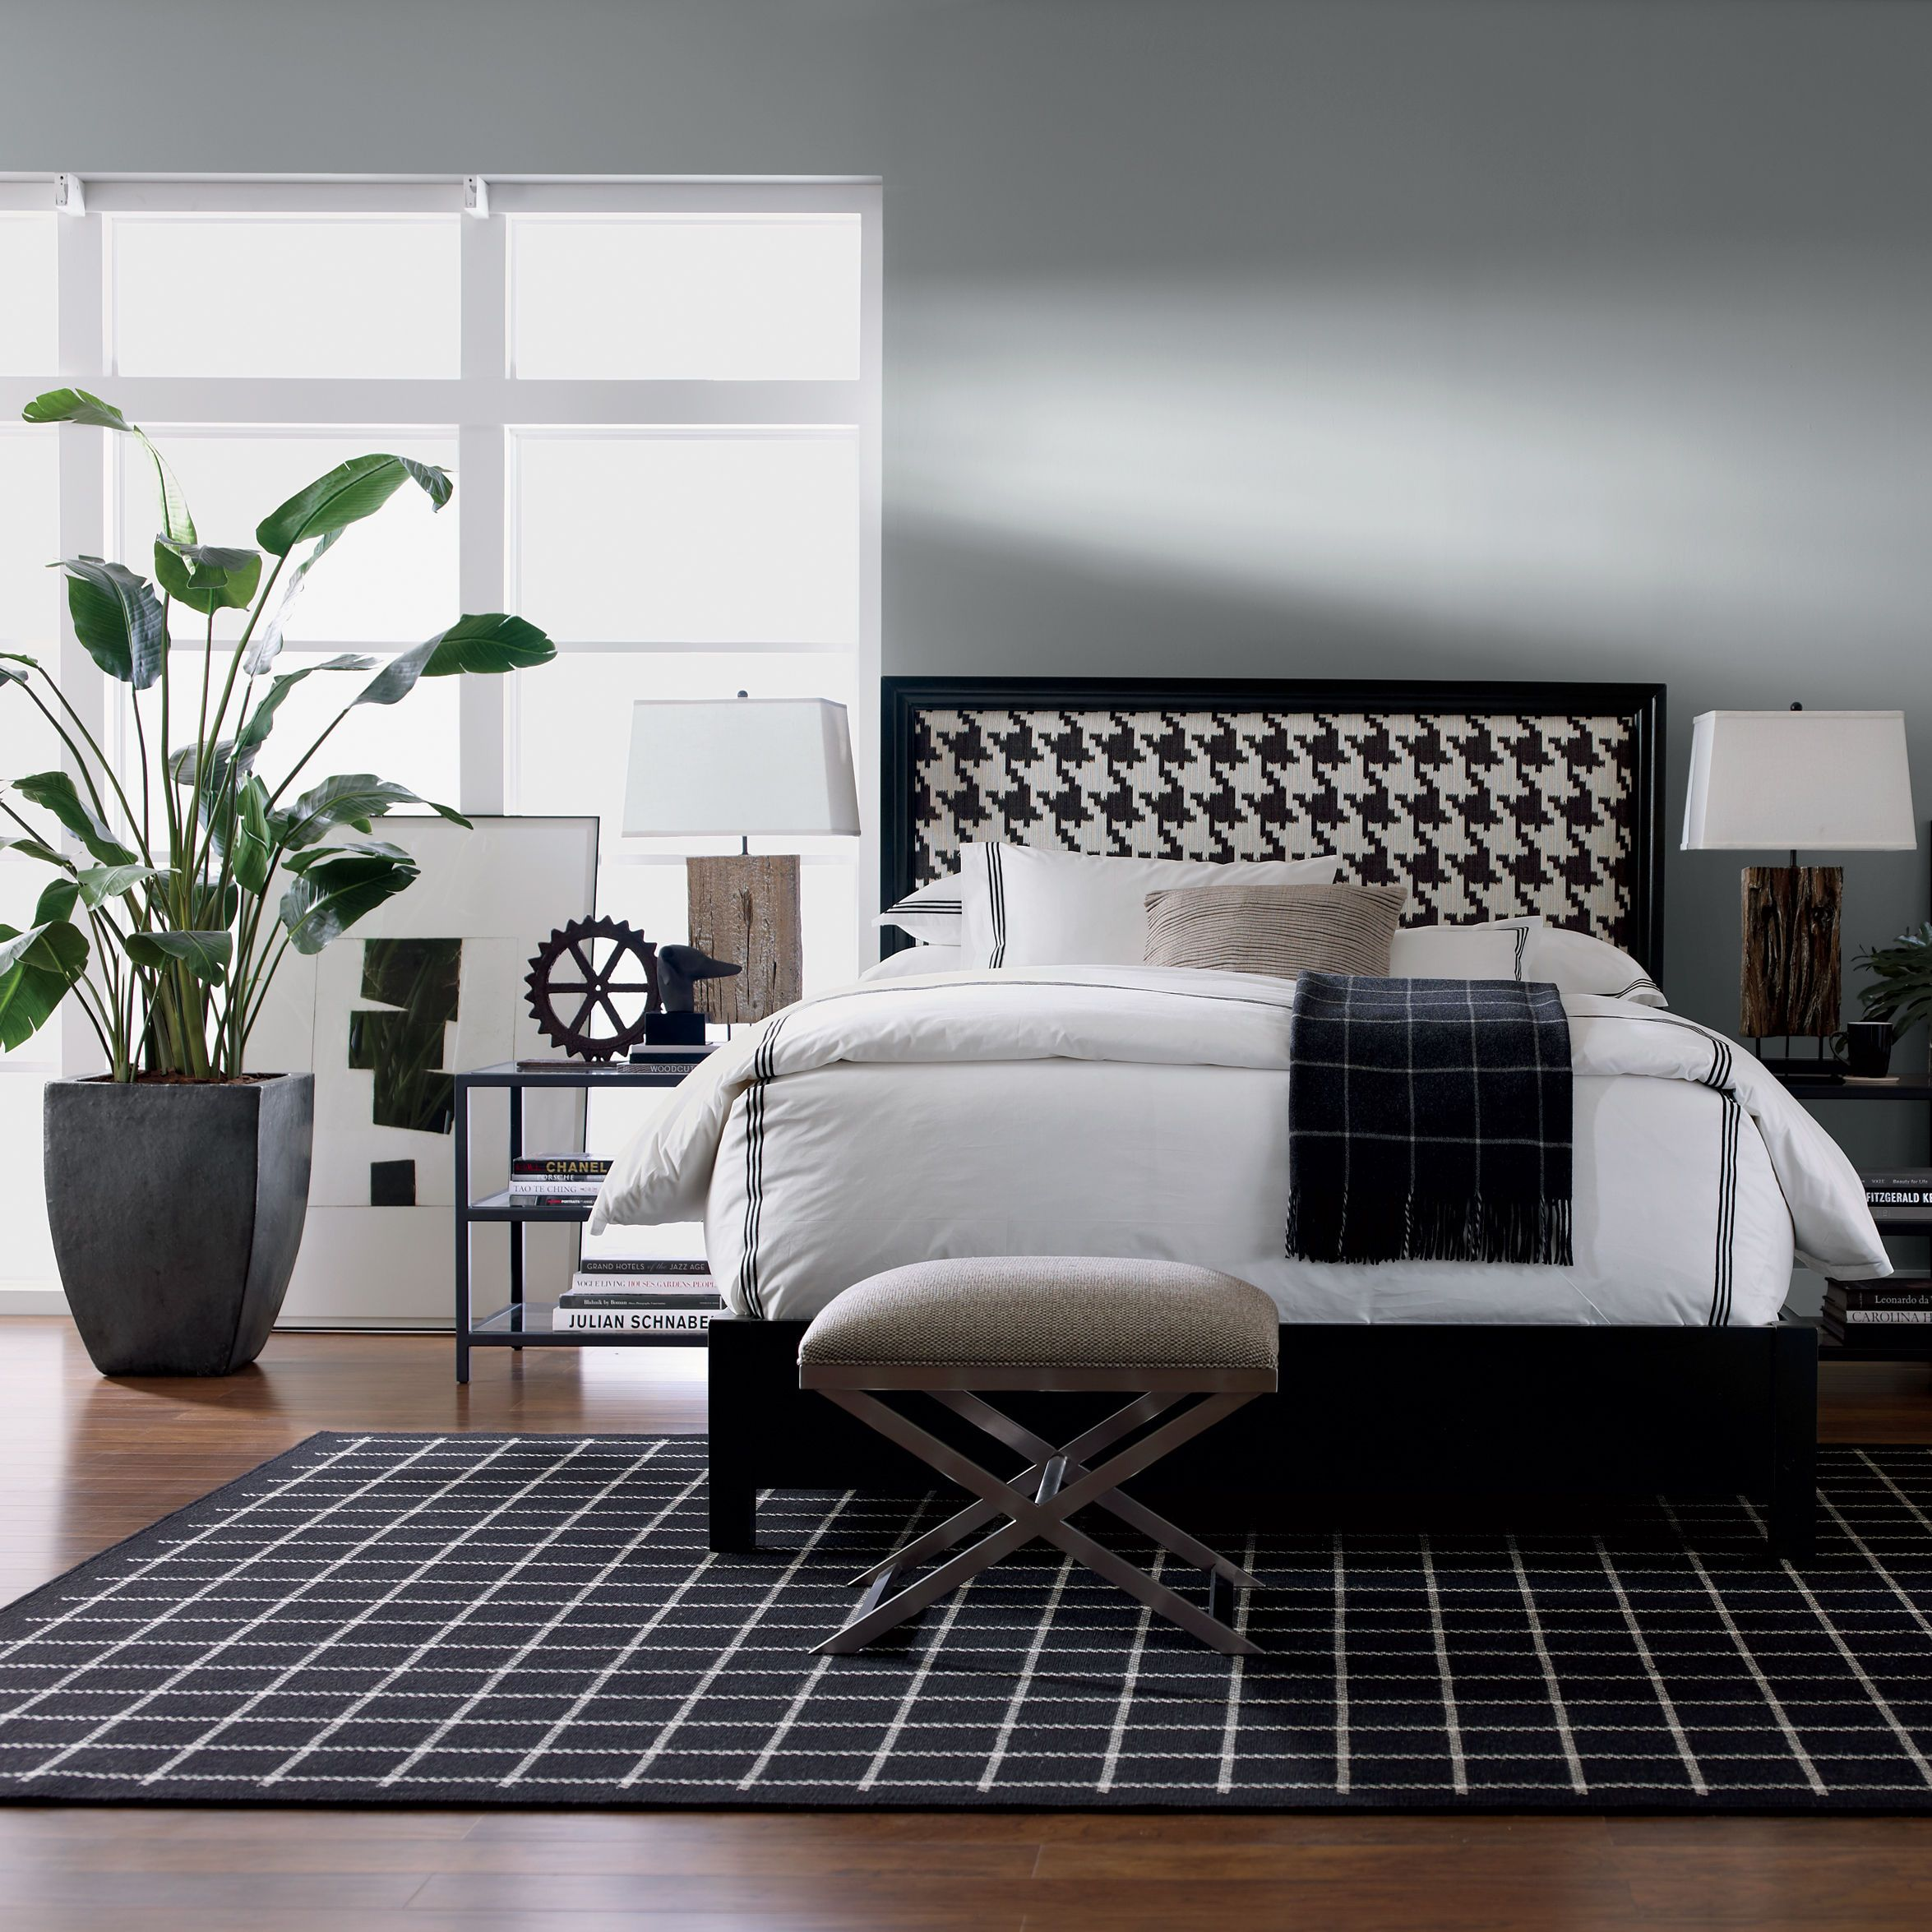 The Clic Menswear Print Takes Center Stage In This Black And White Bedroom